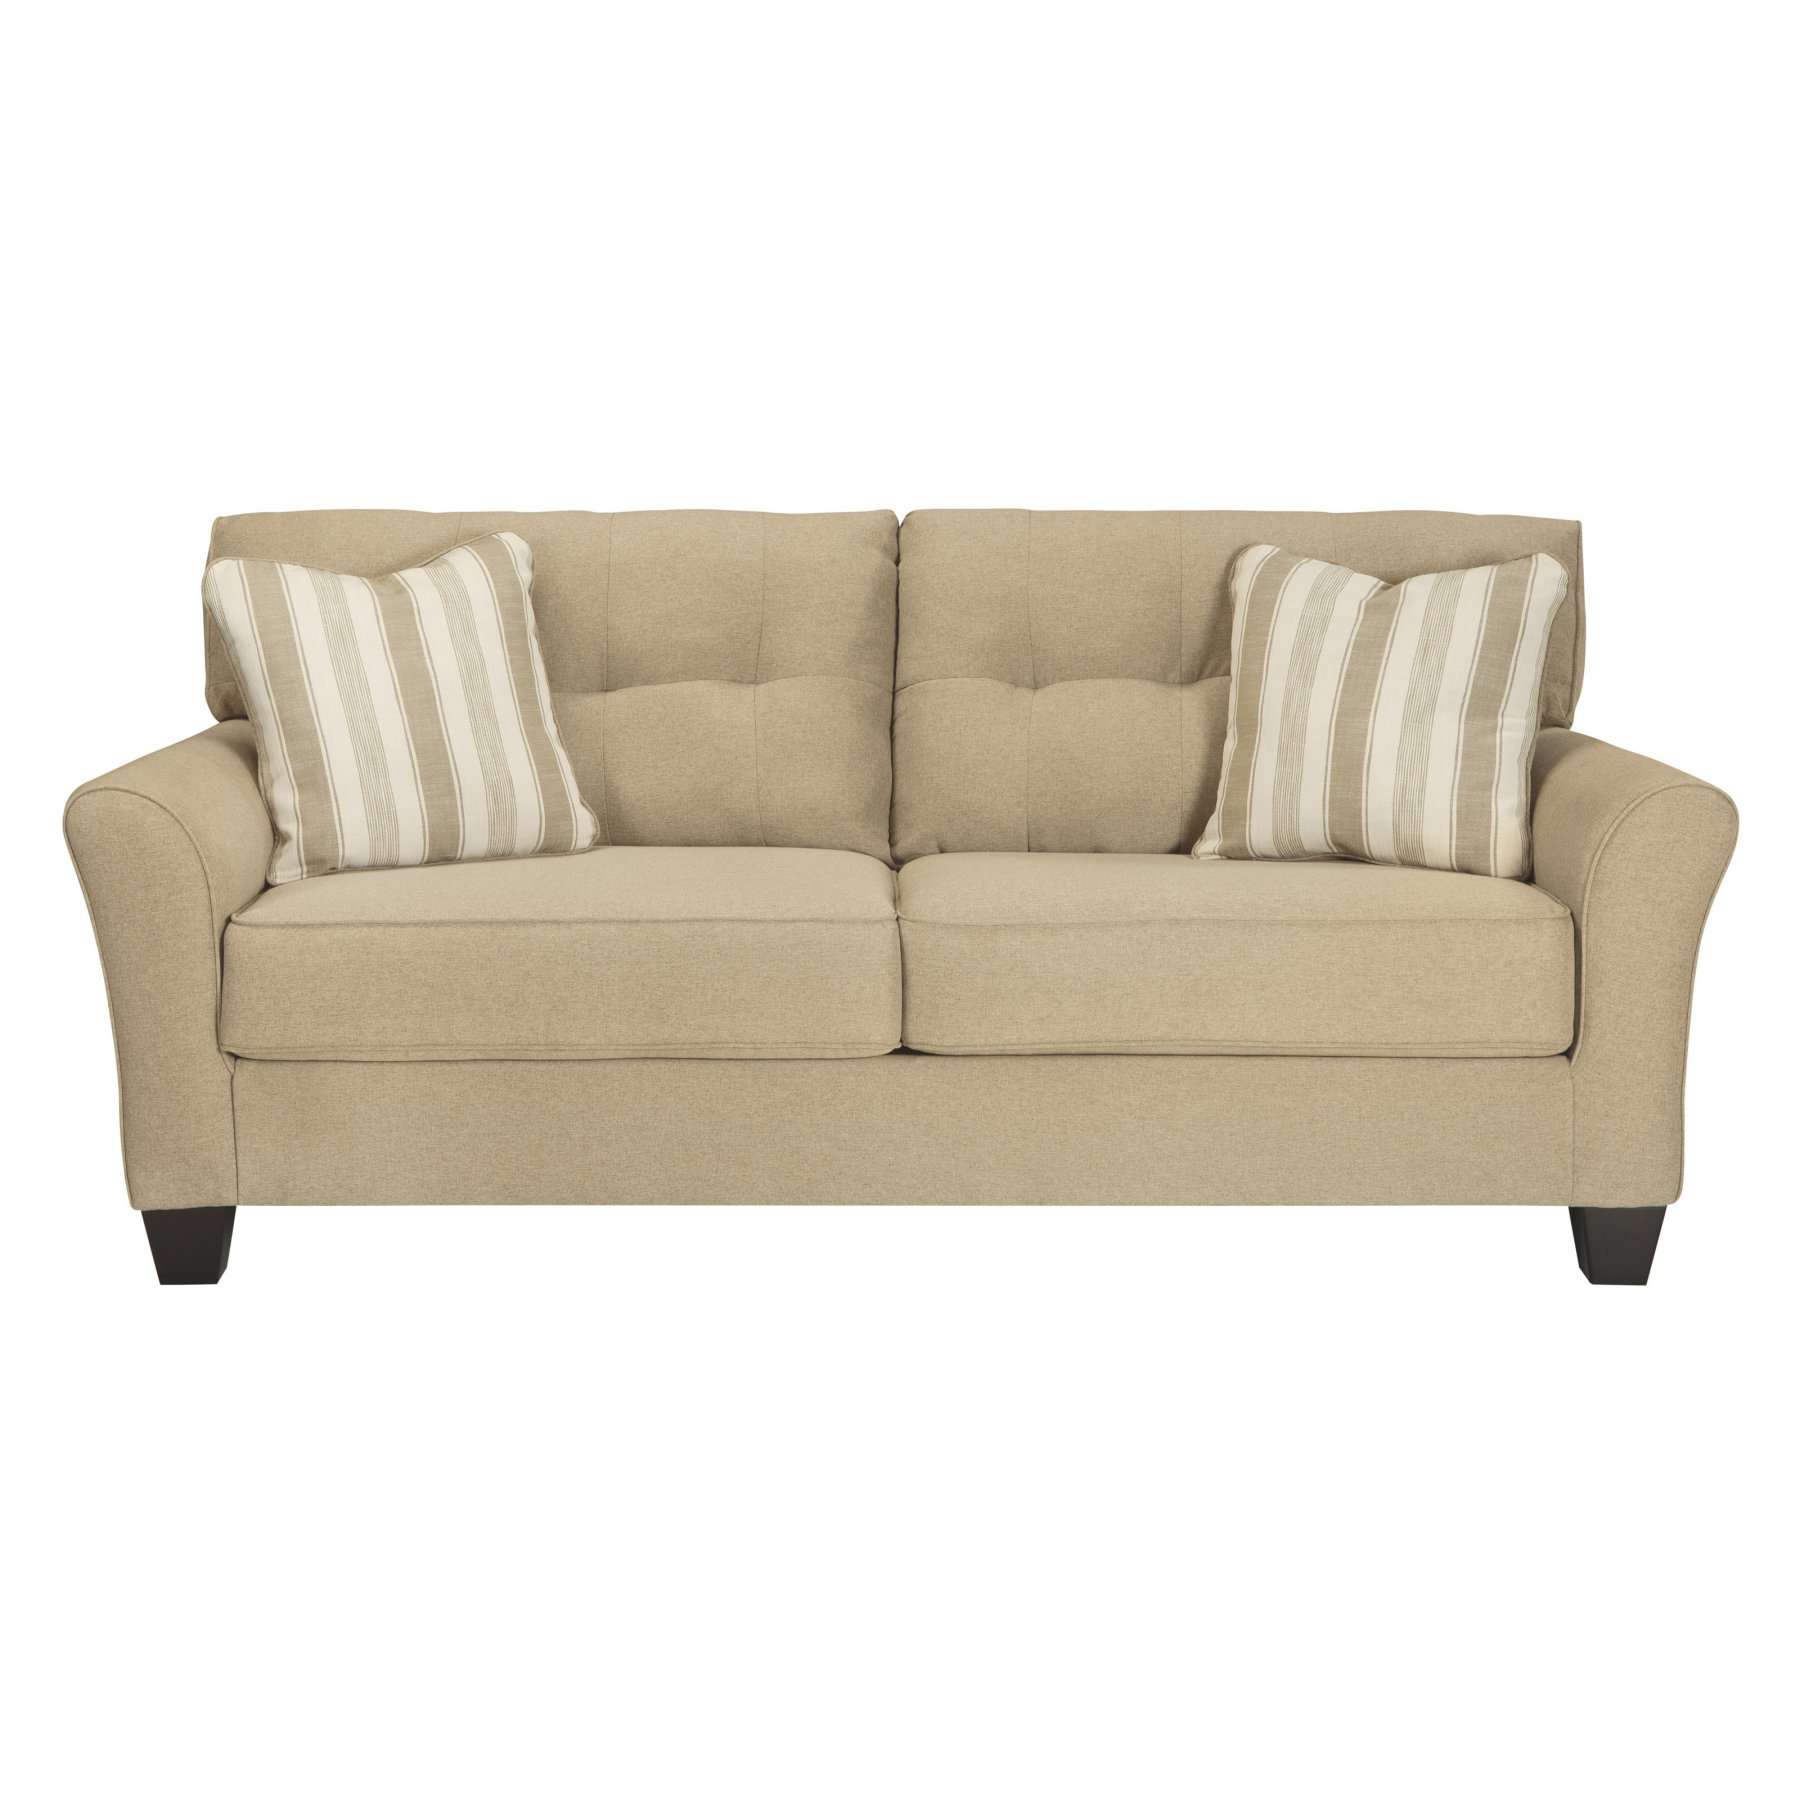 Benchcraft Laryn Queen Sofa Sleeper  5190239